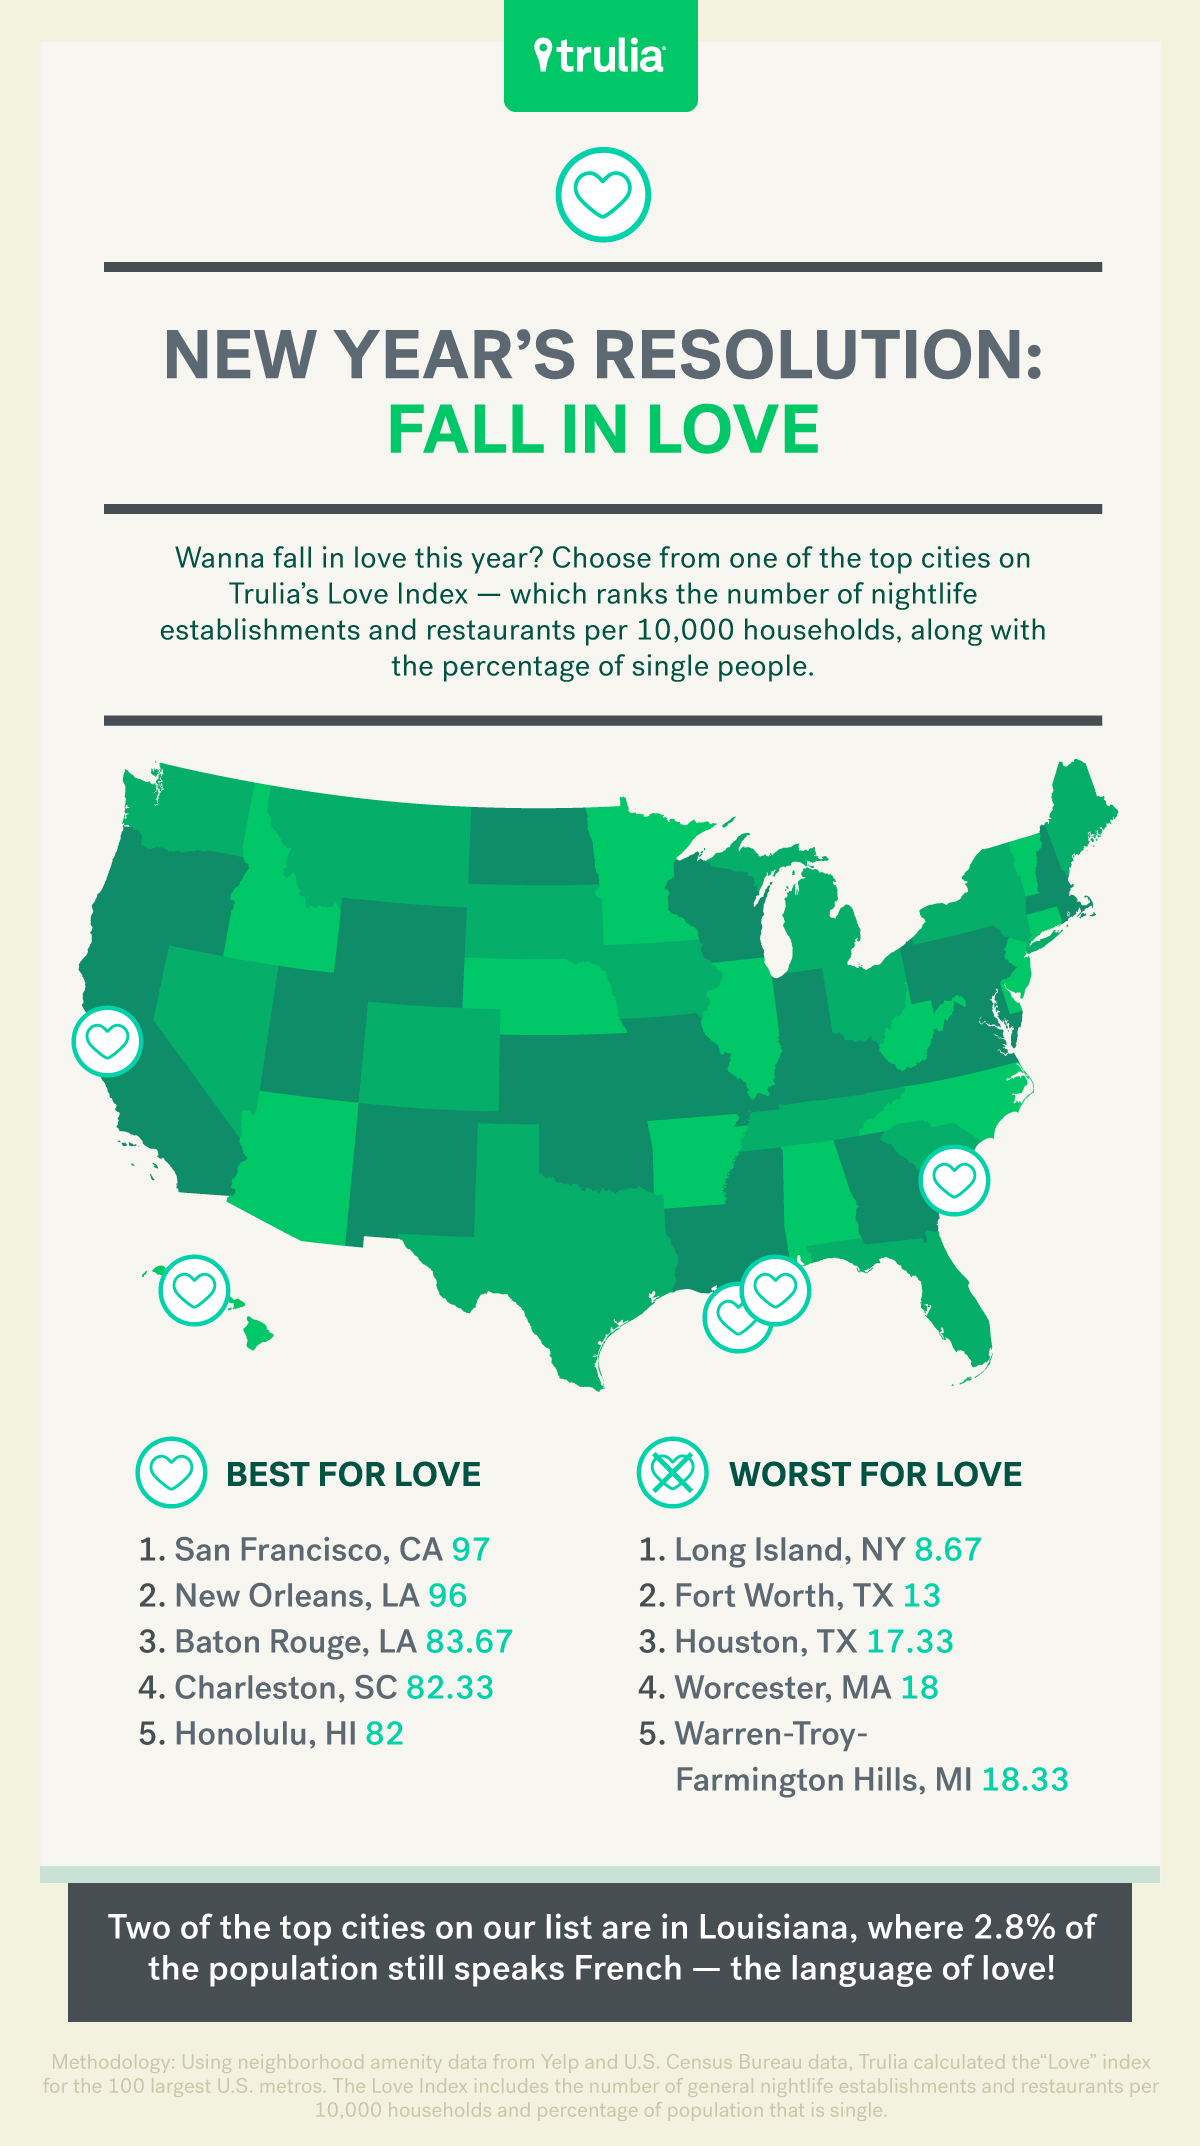 New Year's Resolutions: Best And Worst Cities